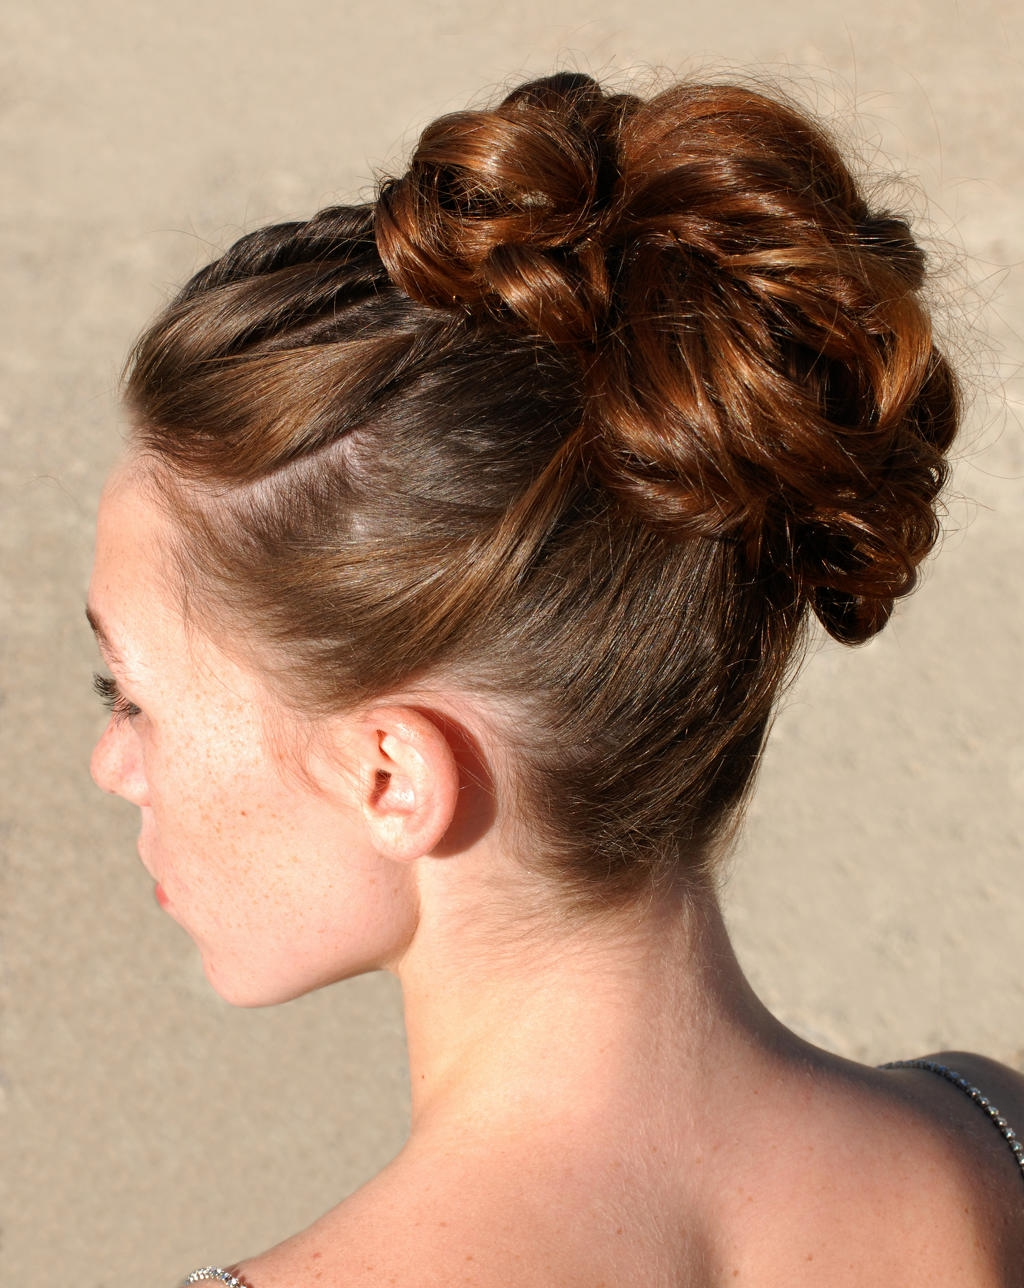 hair up styles images 100 delightful prom hairstyles ideas haircuts design 8198